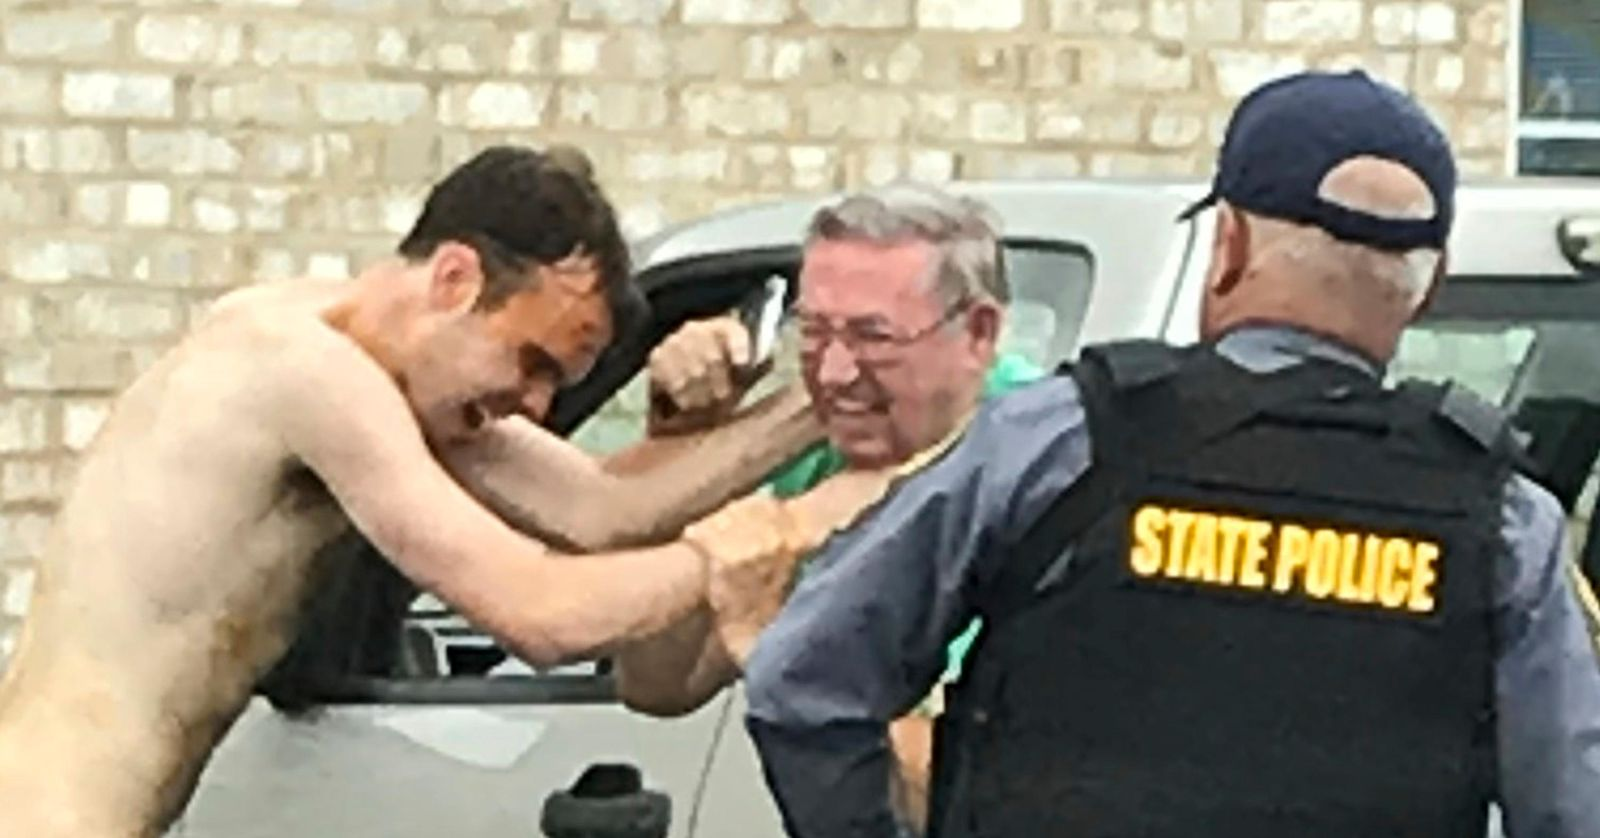 Matthew Thomas Bernard puts his hands on Keeling Baptist Church groundskeeper Loyd Gauldin, as a state police officer attempts to take him into custody on Tuesday, Aug. 27, 2019 in Keeling, Va. (Caleb Ayers/Danville Register & Bee via AP)